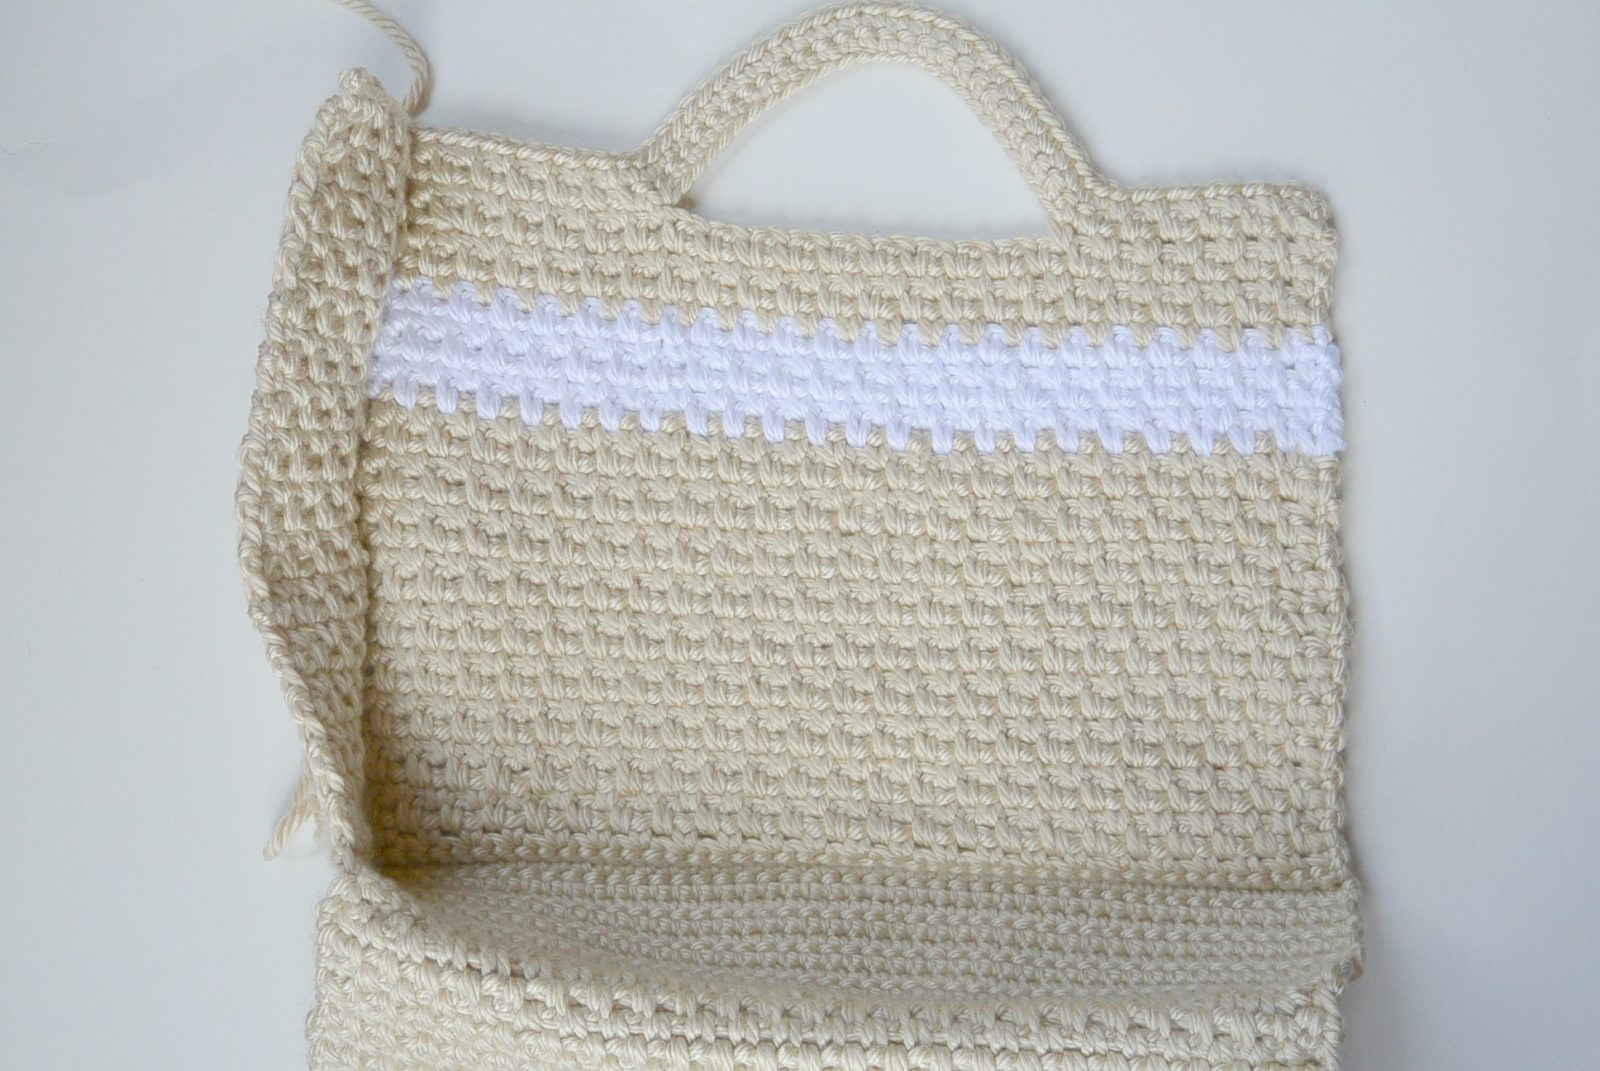 How To Crochet A Bag : This is how the purse looks when it is coming together. You start with ...